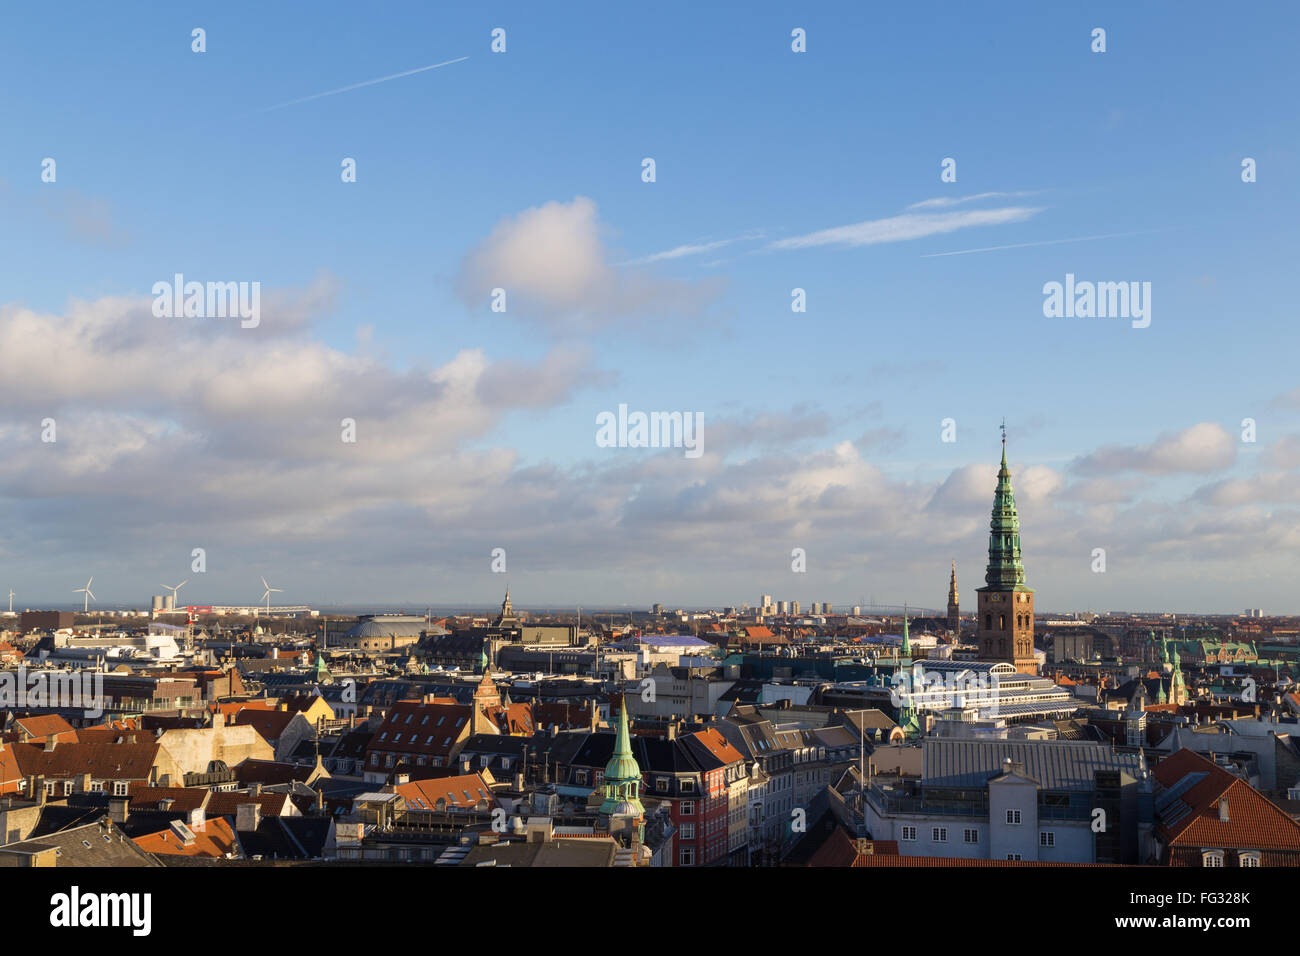 Copenhagen, Denmark - February 3, 2016: View of the skyline from the round tower. - Stock Image